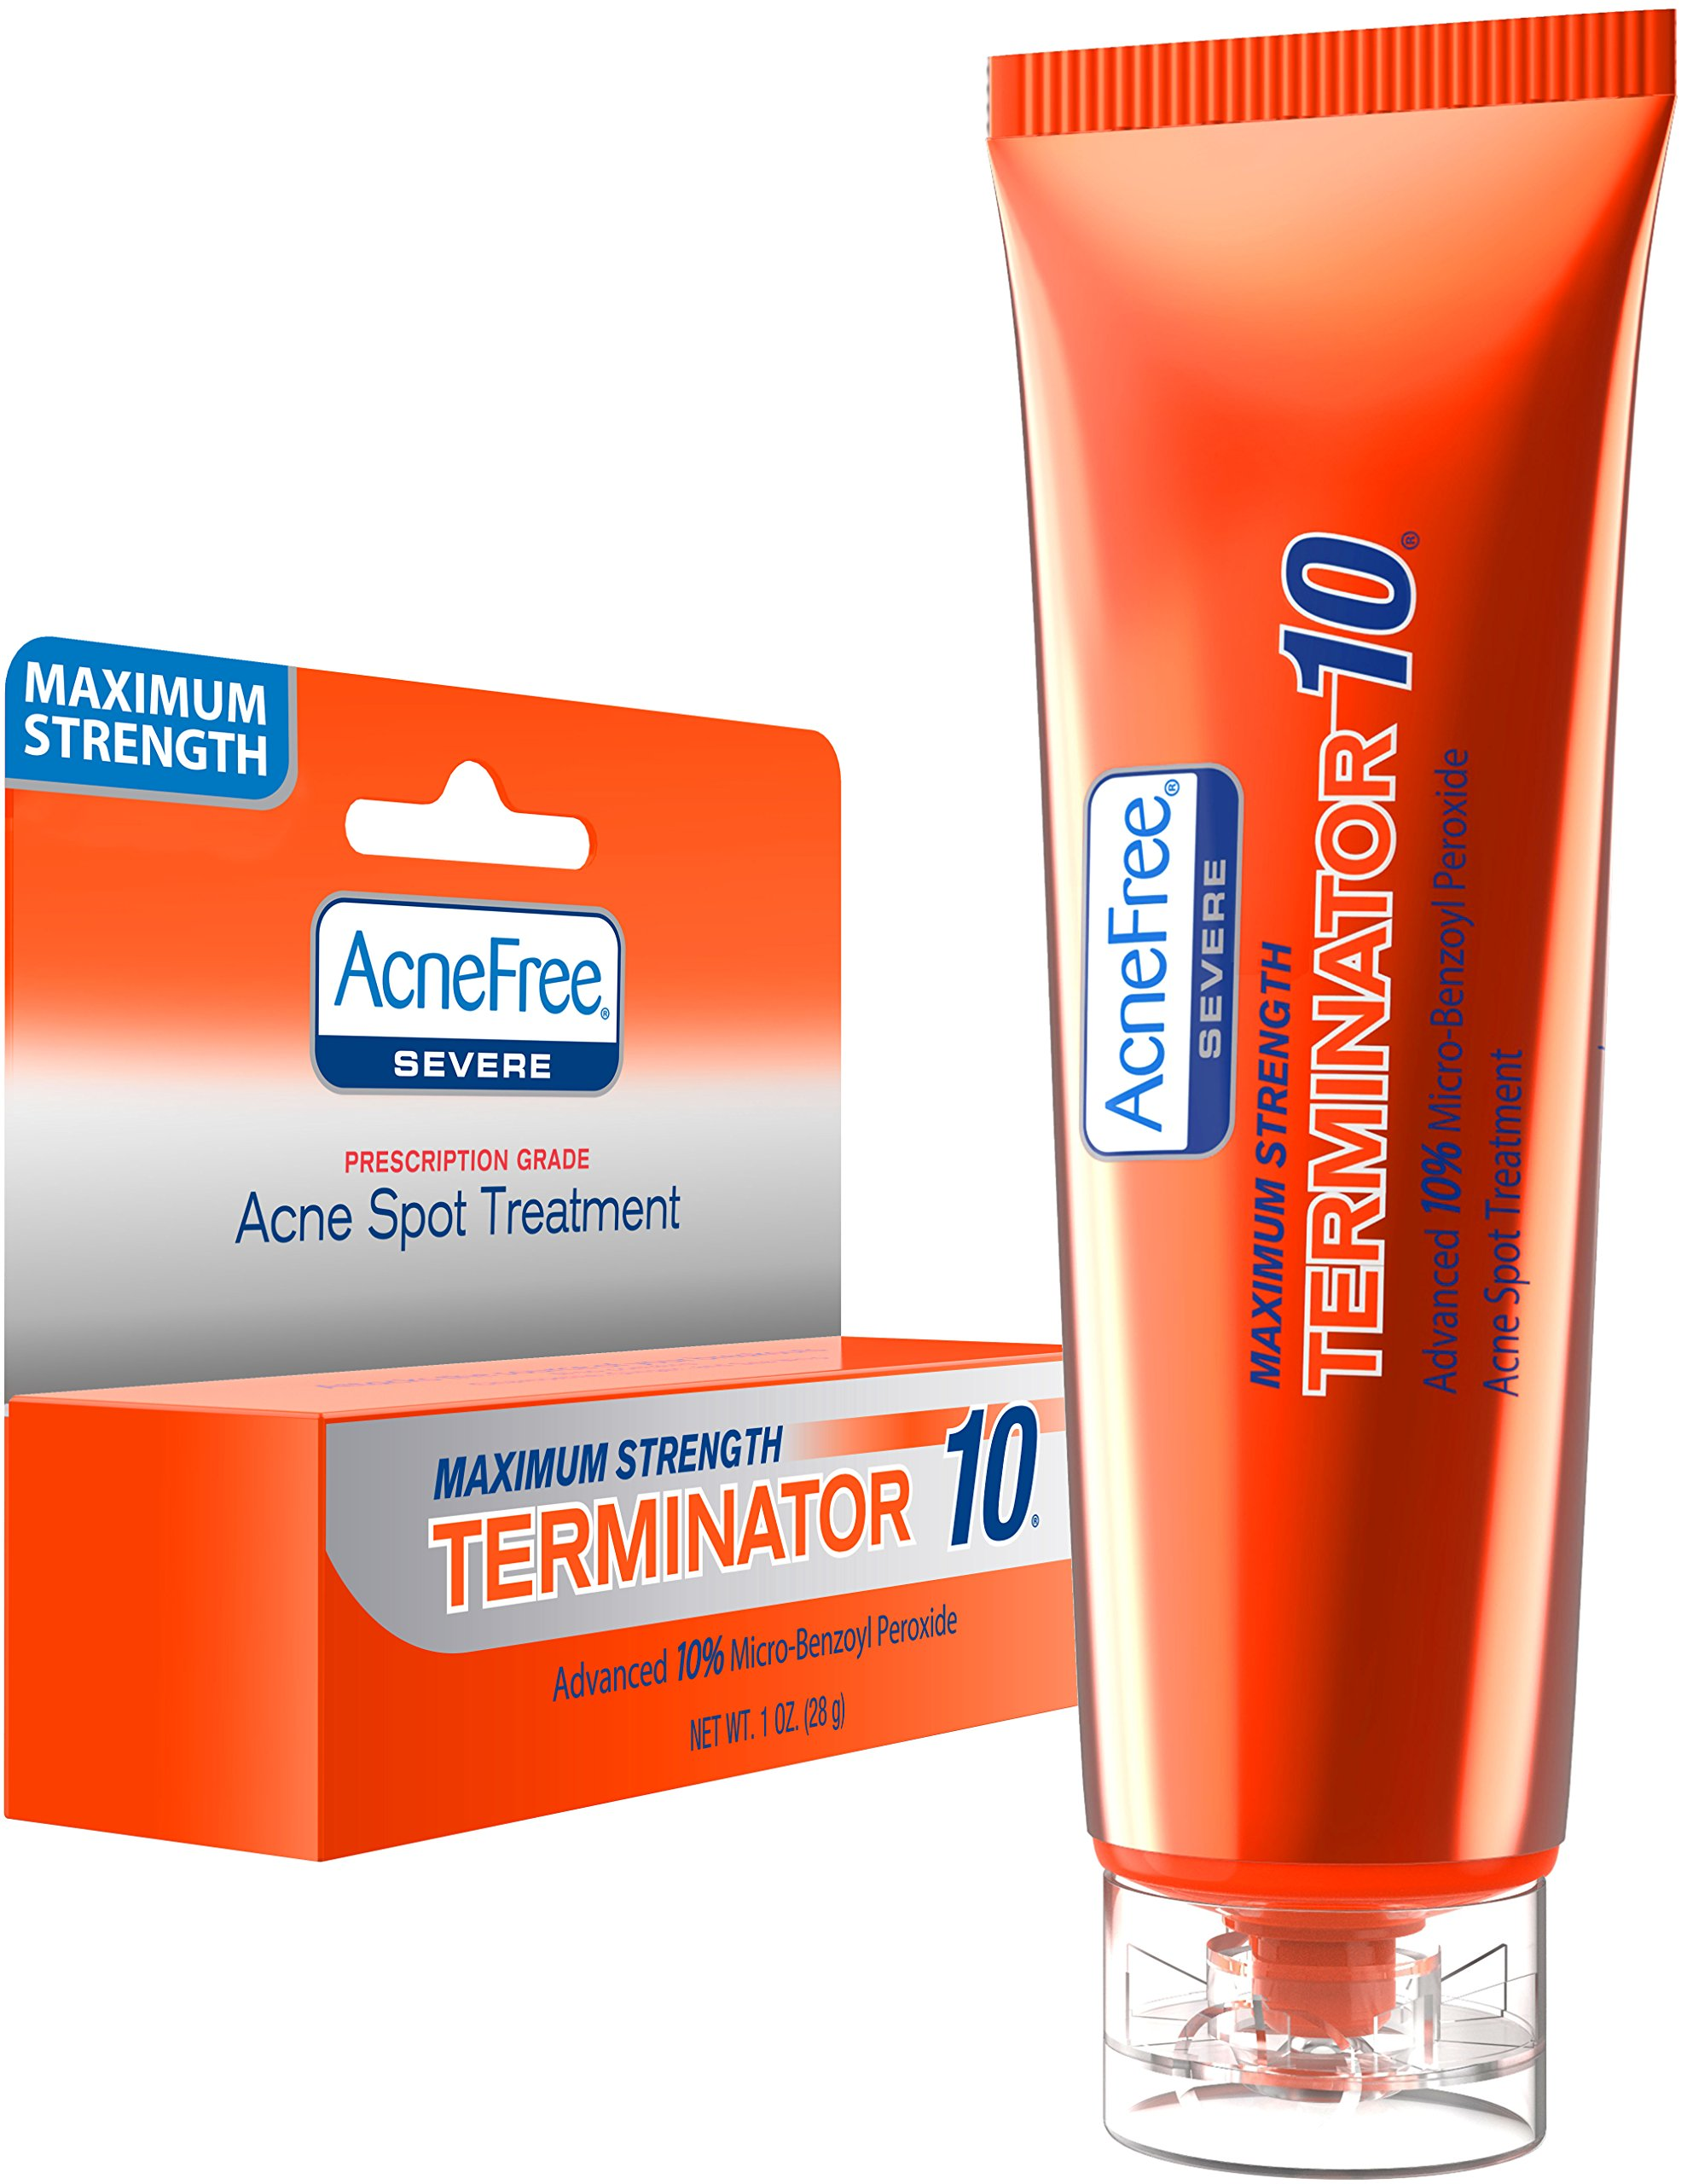 AcneFree Terminator 10 Acne Spot Treatment with Benzoyl Peroxide 10% Maximum Strength Acne Cream Treatment, 1 Ounce - Pack Of 1